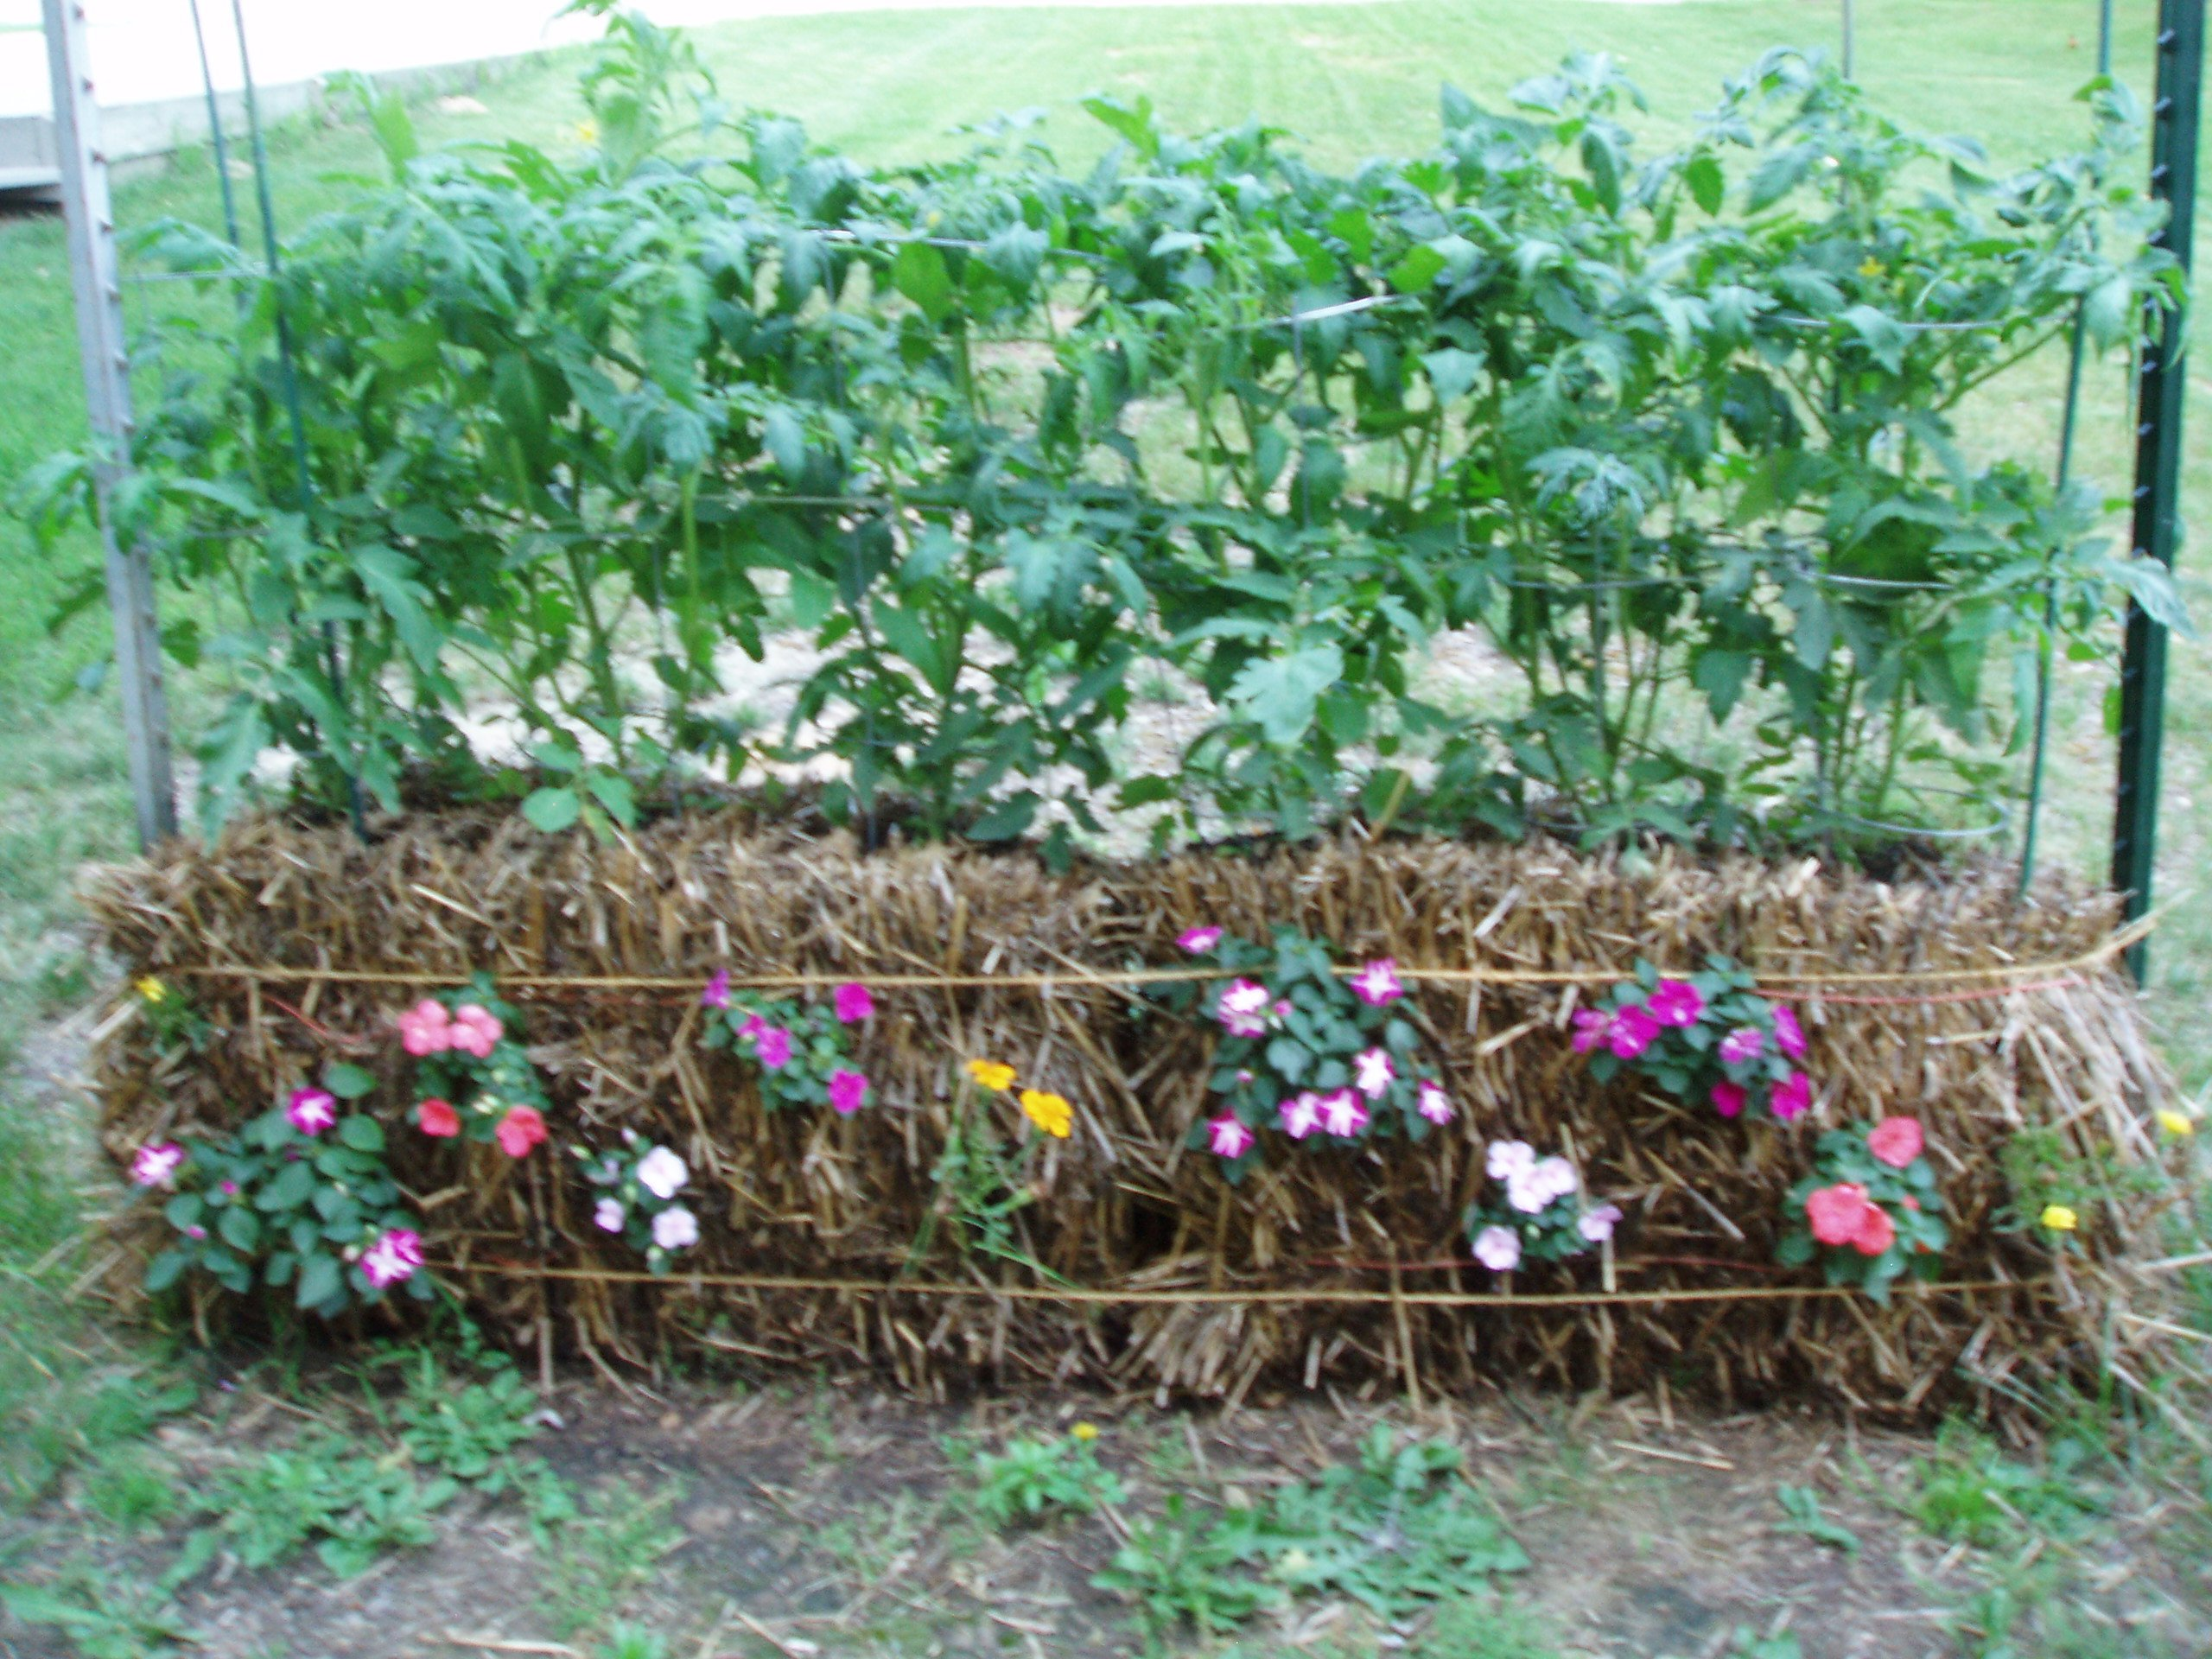 Straw bale gardening how to create an amazing garden Where to buy straw bales for gardening